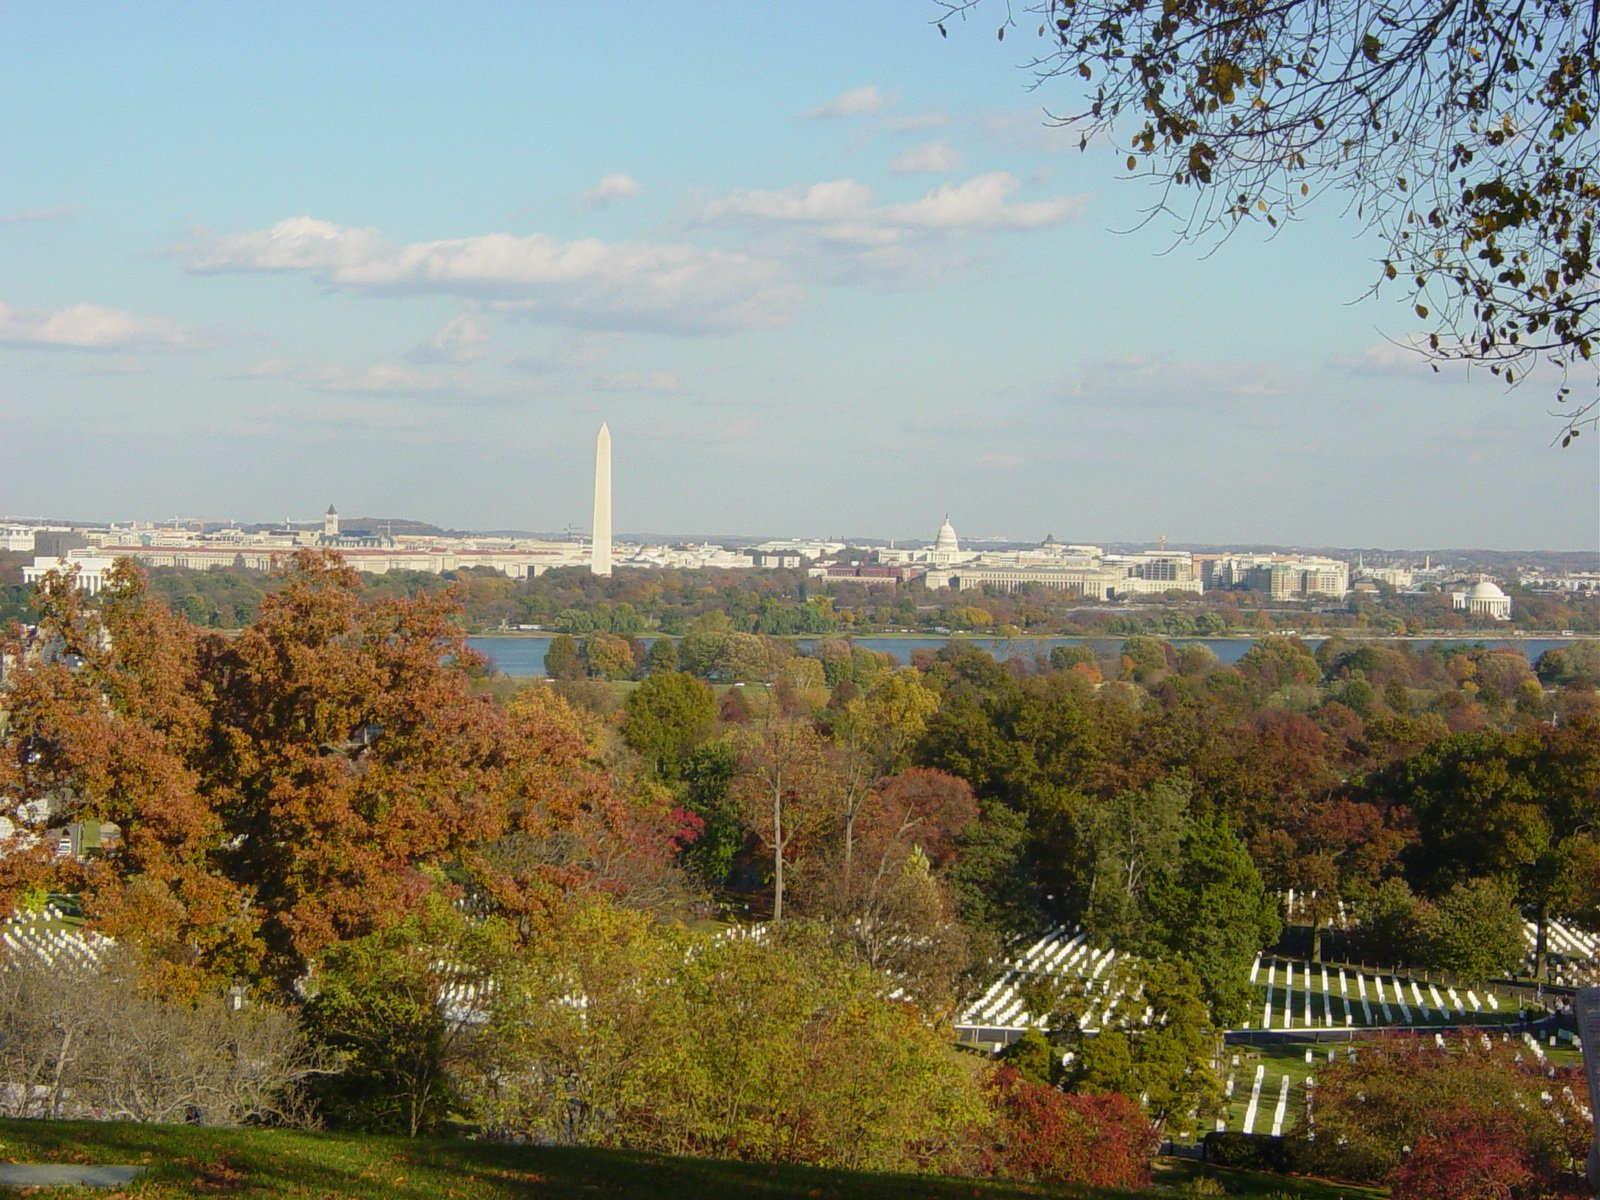 View of Arlington National Cemetery, the Potomac River, and downtown Washington, D.C. from the Arlington House. Wikimedia Commons.